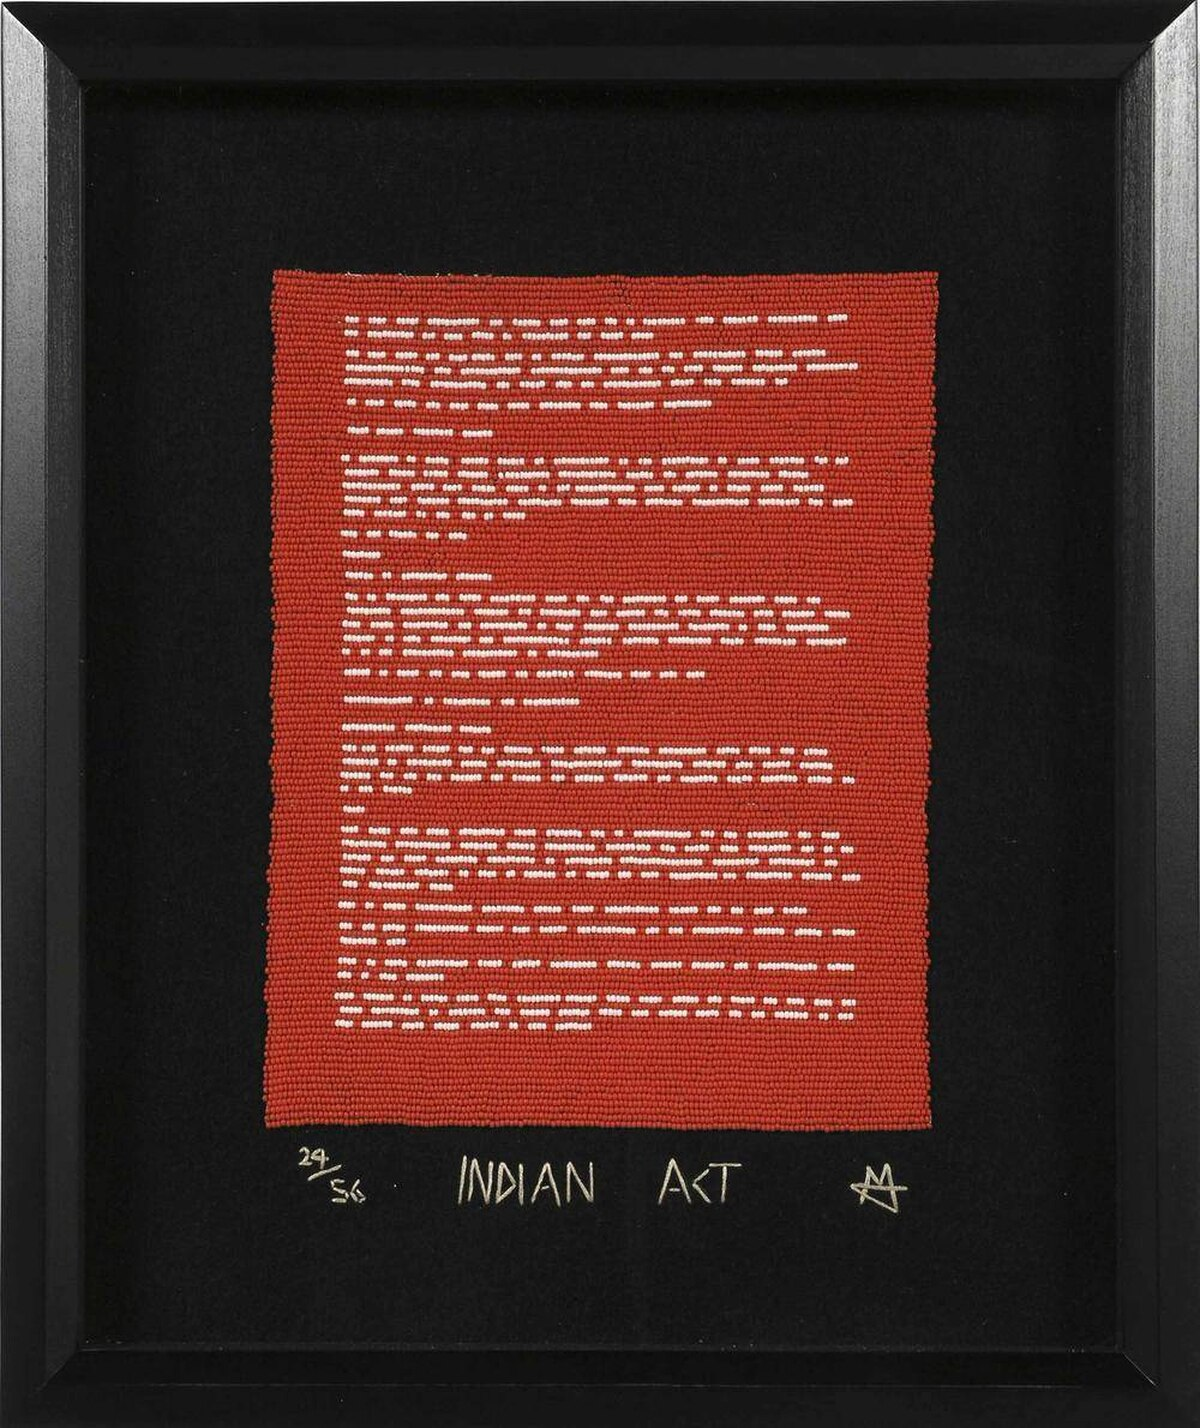 Nadia Myre, Indian Act, 2000-02. Glass beads, stroud cloth, thread and downloaded copies of the text of the Indian Act (chapter